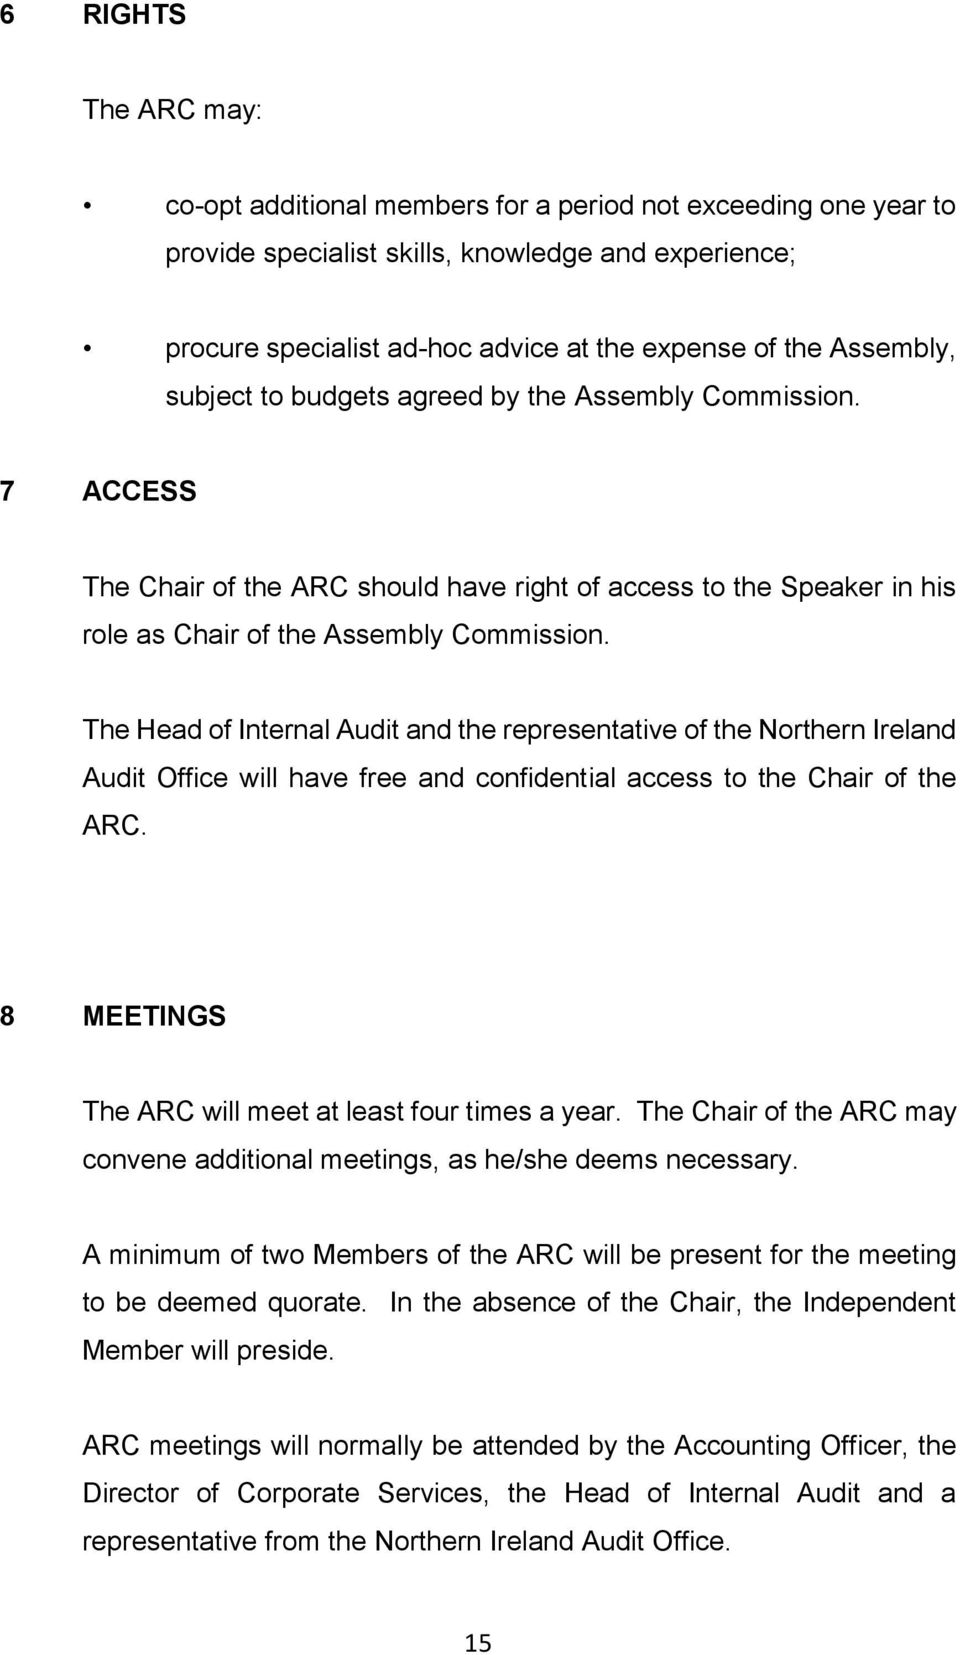 The Head of Internal Audit and the representative of the Northern Ireland Audit Office will have free and confidential access to the Chair of the ARC.